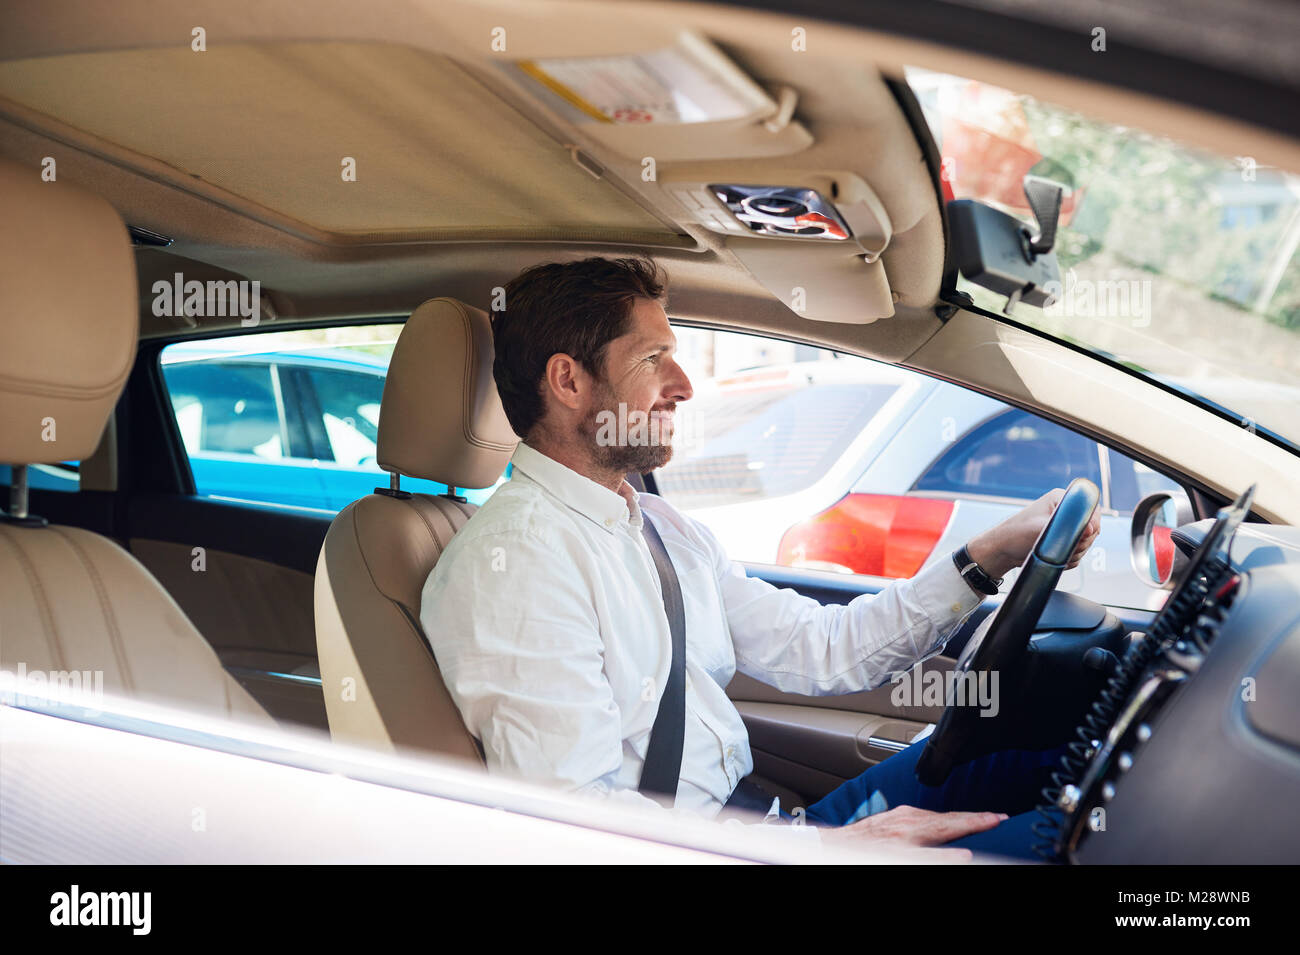 Smiling young man sitting in his car driving through the city during his morning commute - Stock Image